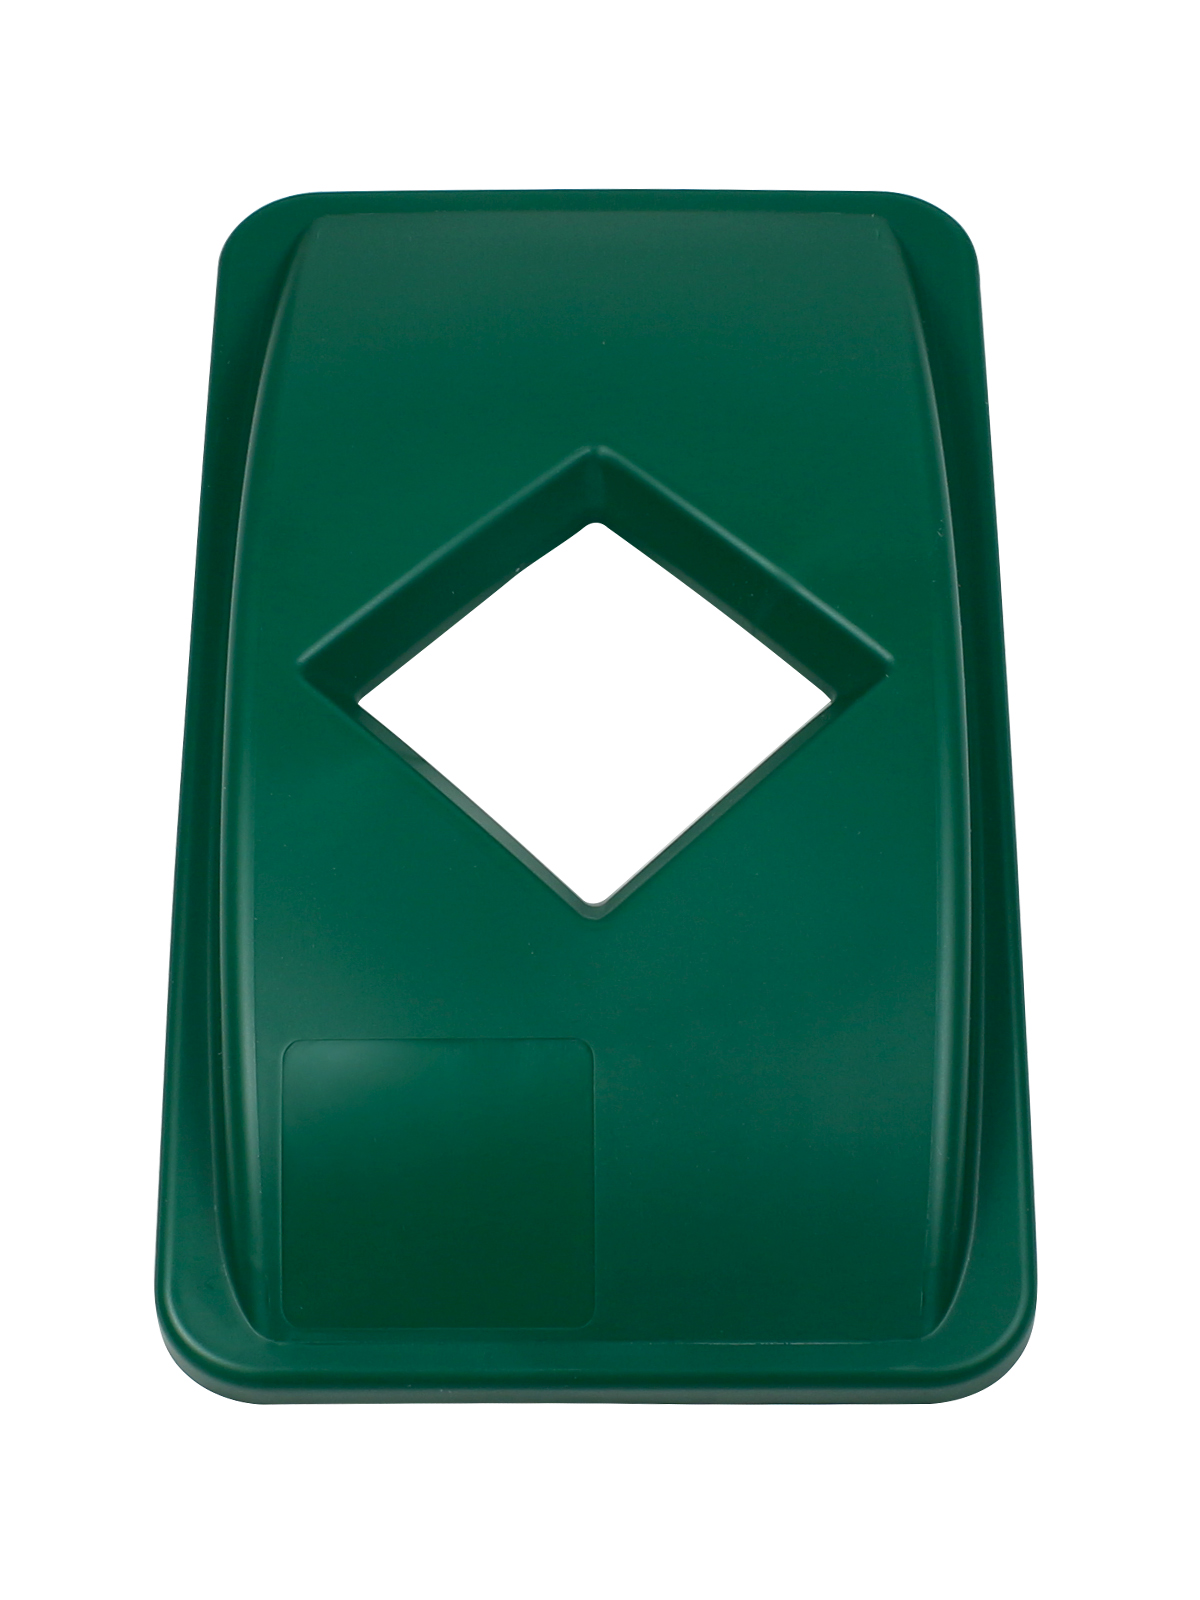 WASTE WATCHER - Single - Lid - Diamond - Dark Green